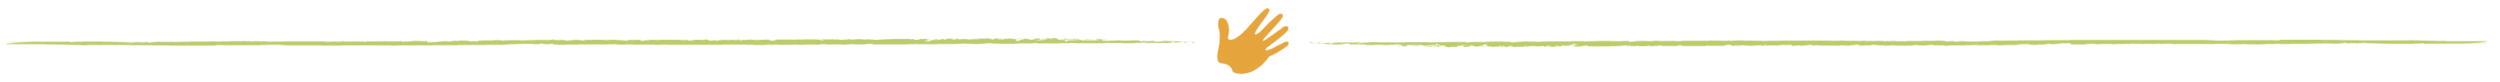 linehand-04-04.png